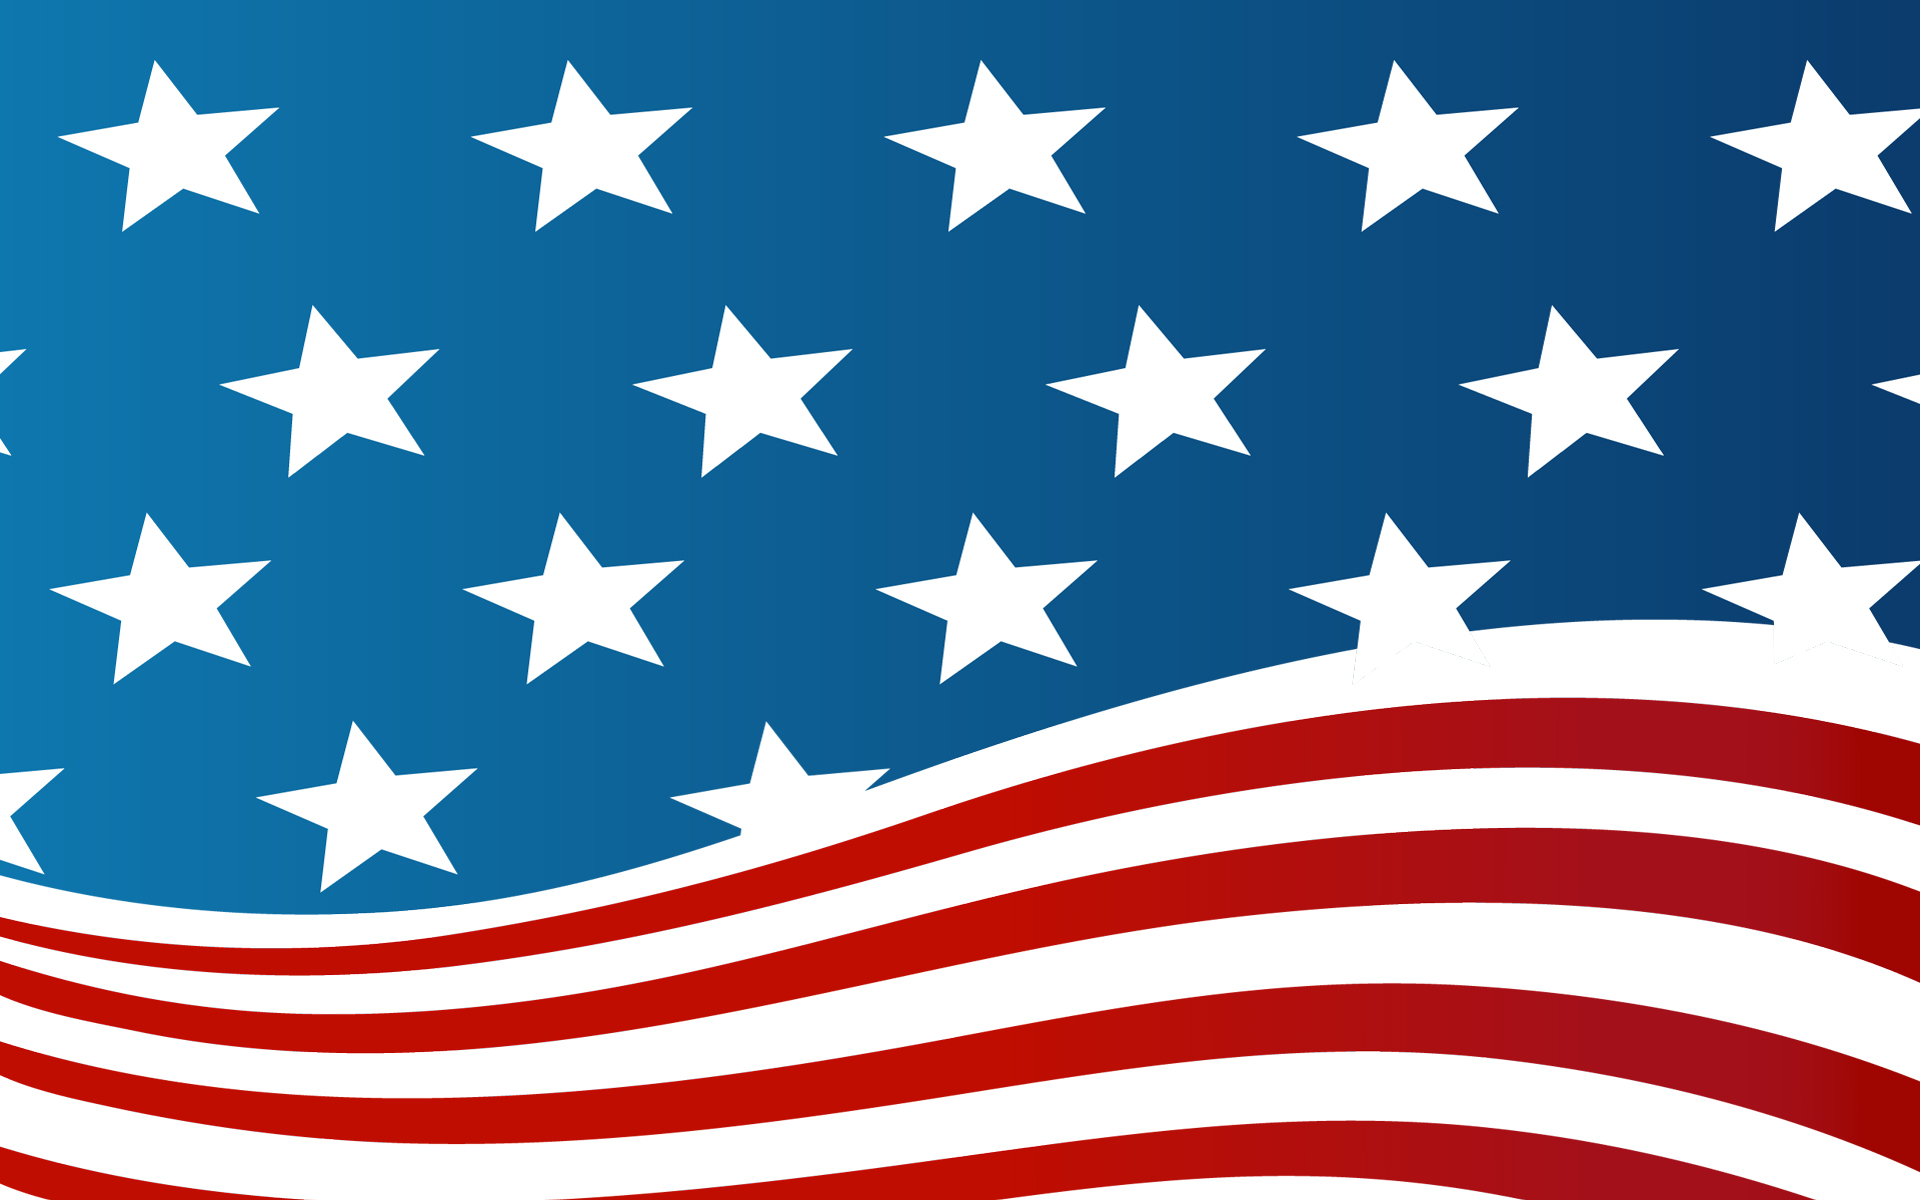 USA Flag617544621 - USA Flag - Petronas, Flag